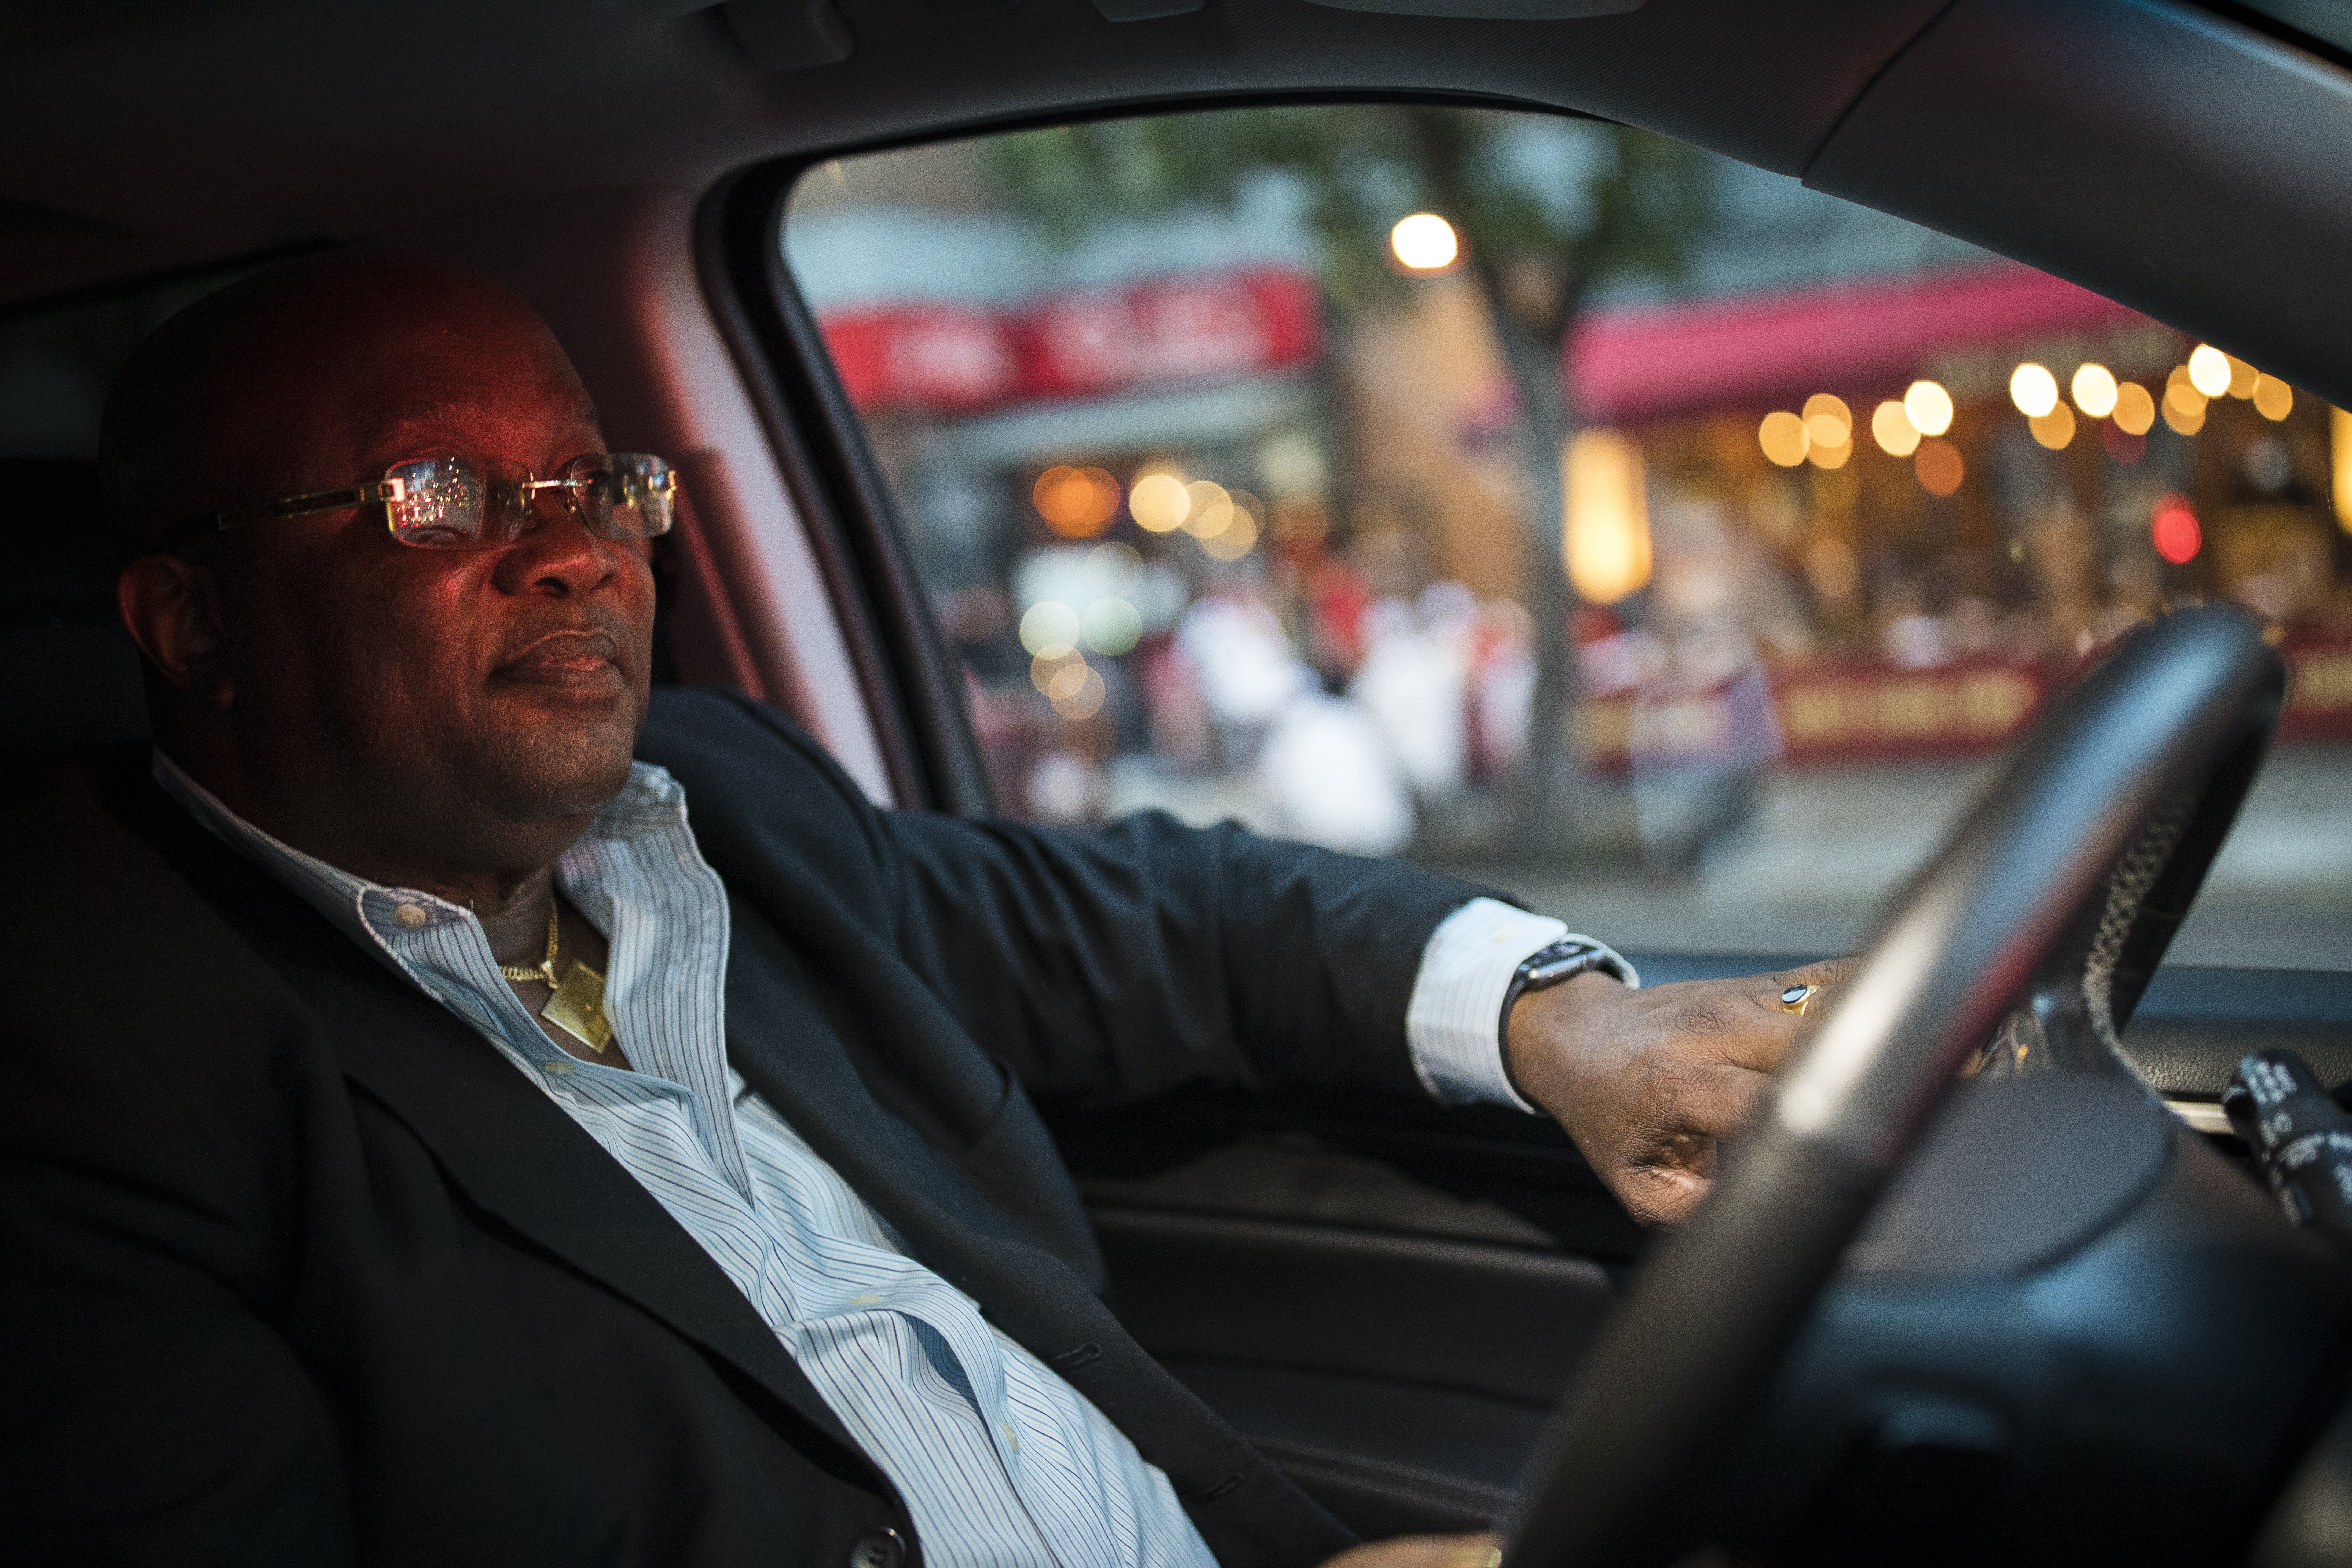 An Uber driver inside a car in New York City.